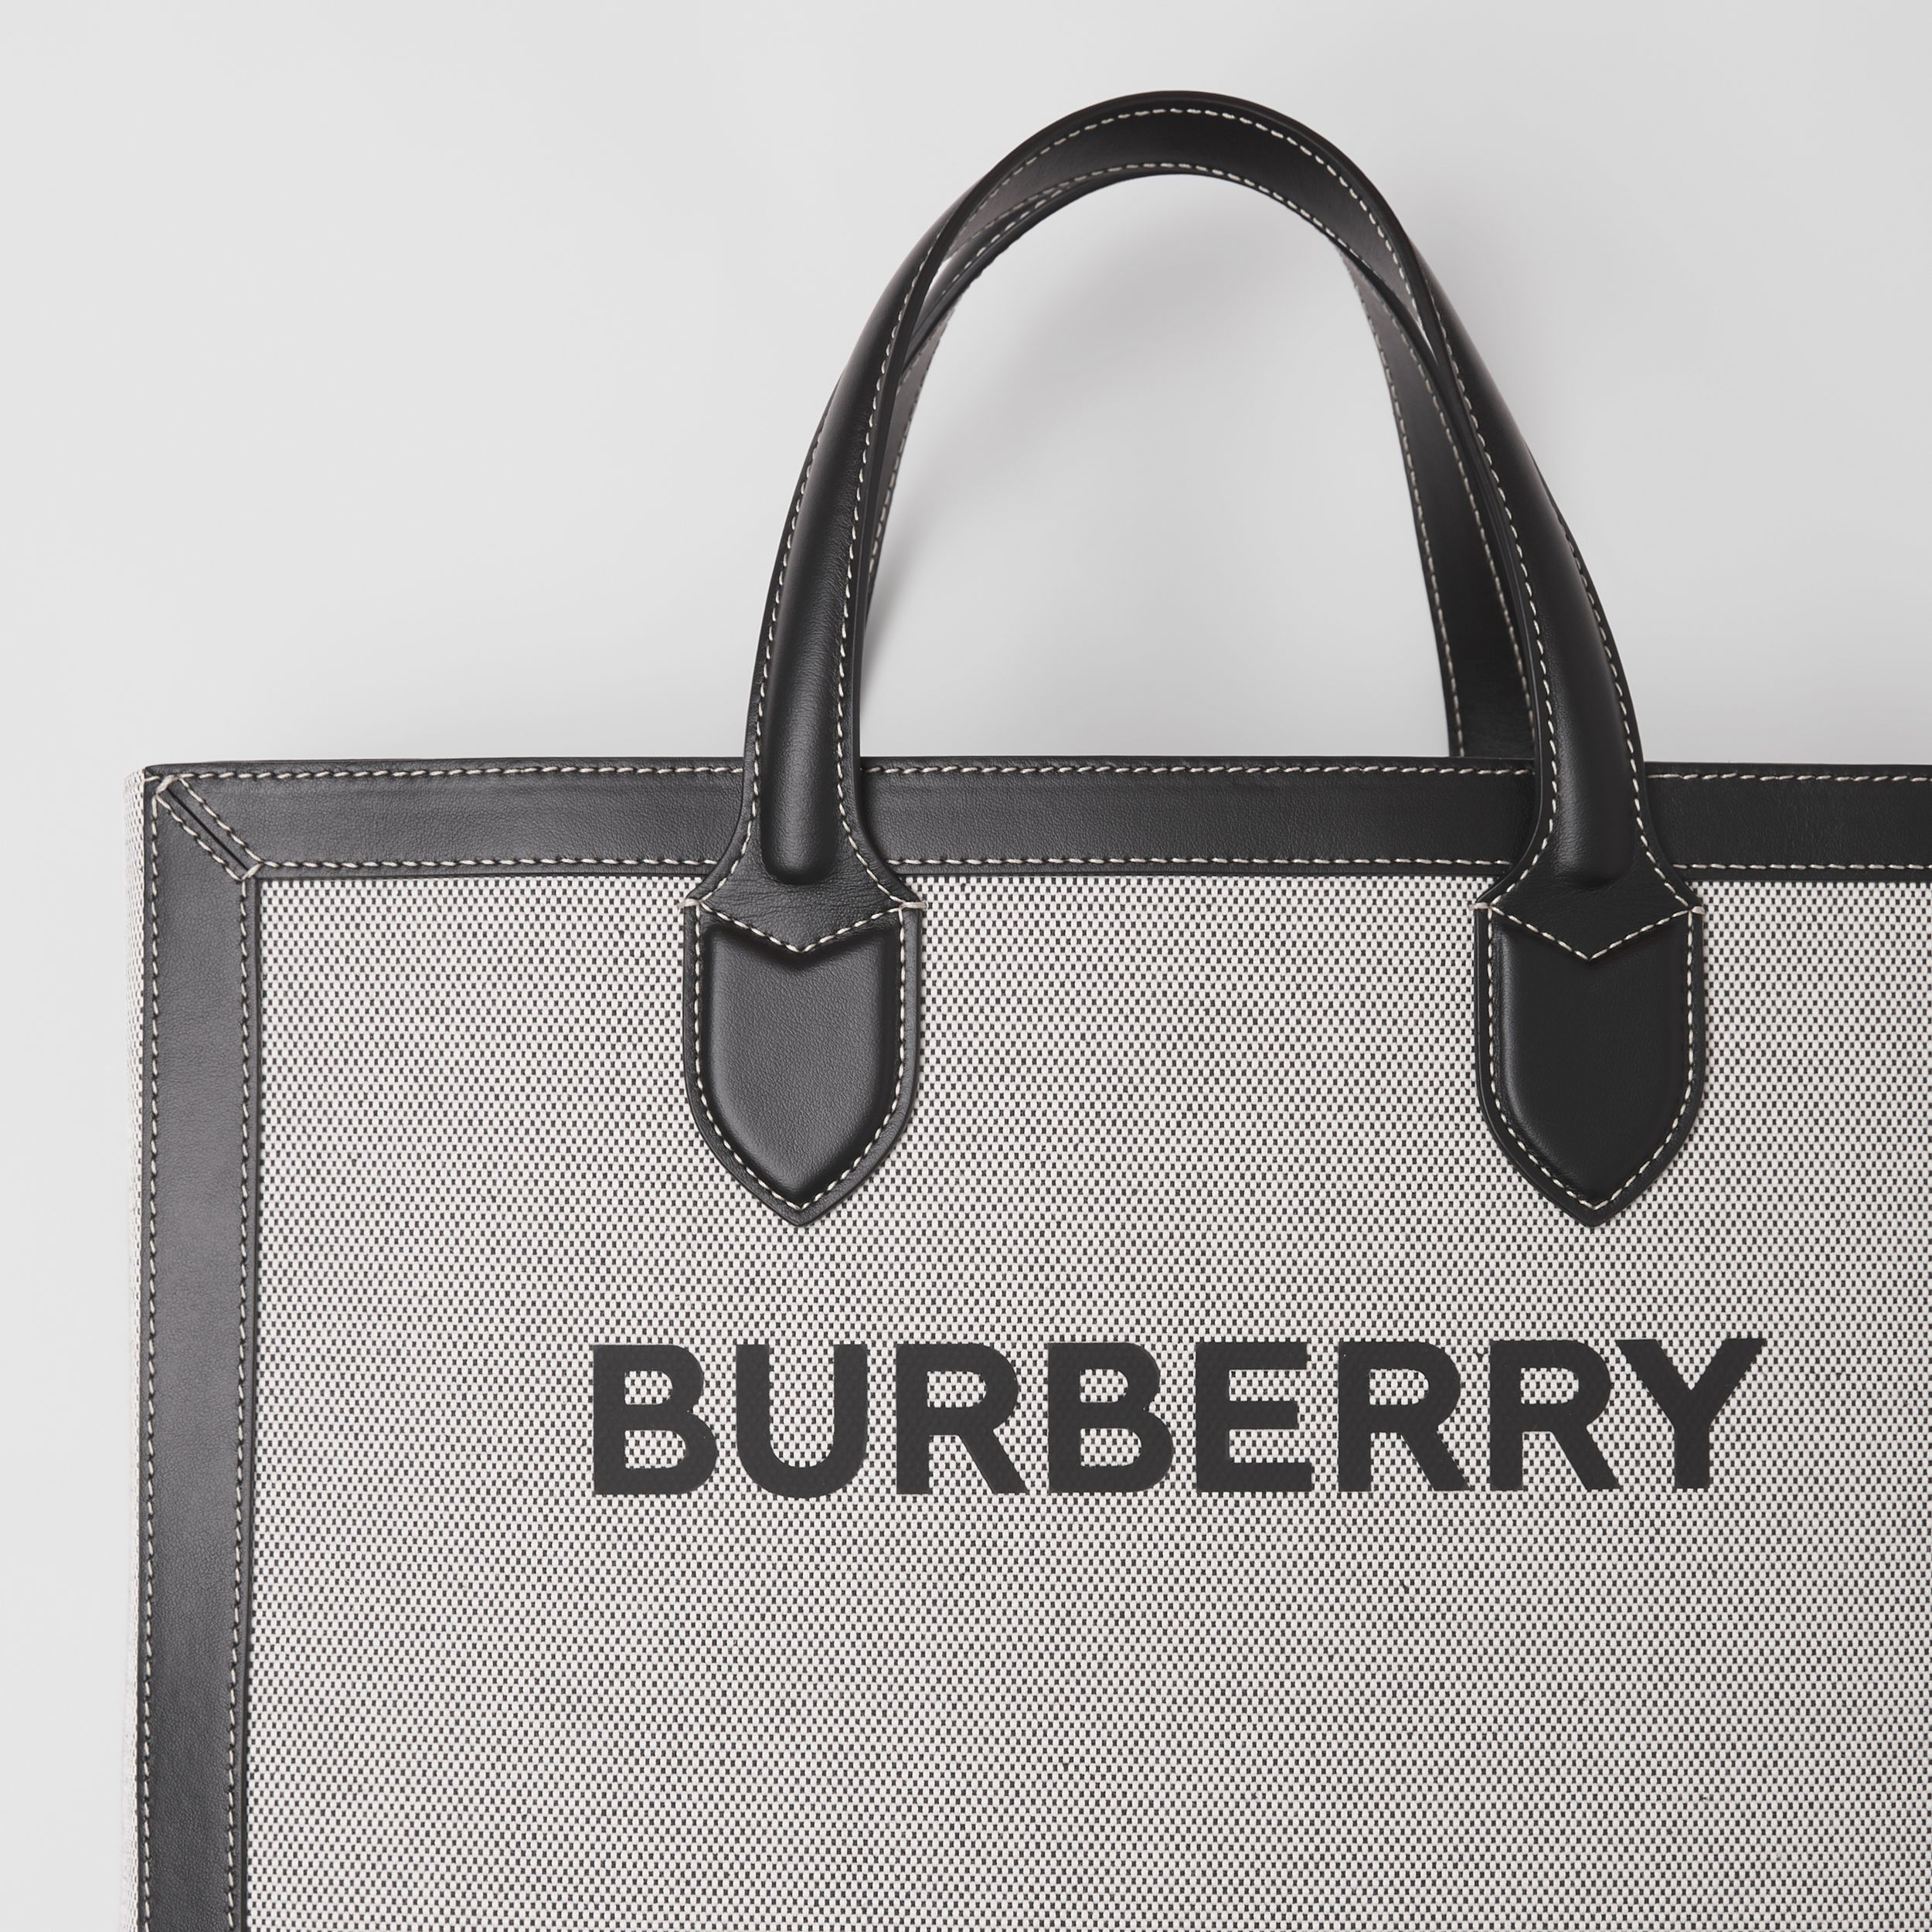 Horseferry Print Canvas and Leather Tote in Black | Burberry - 2